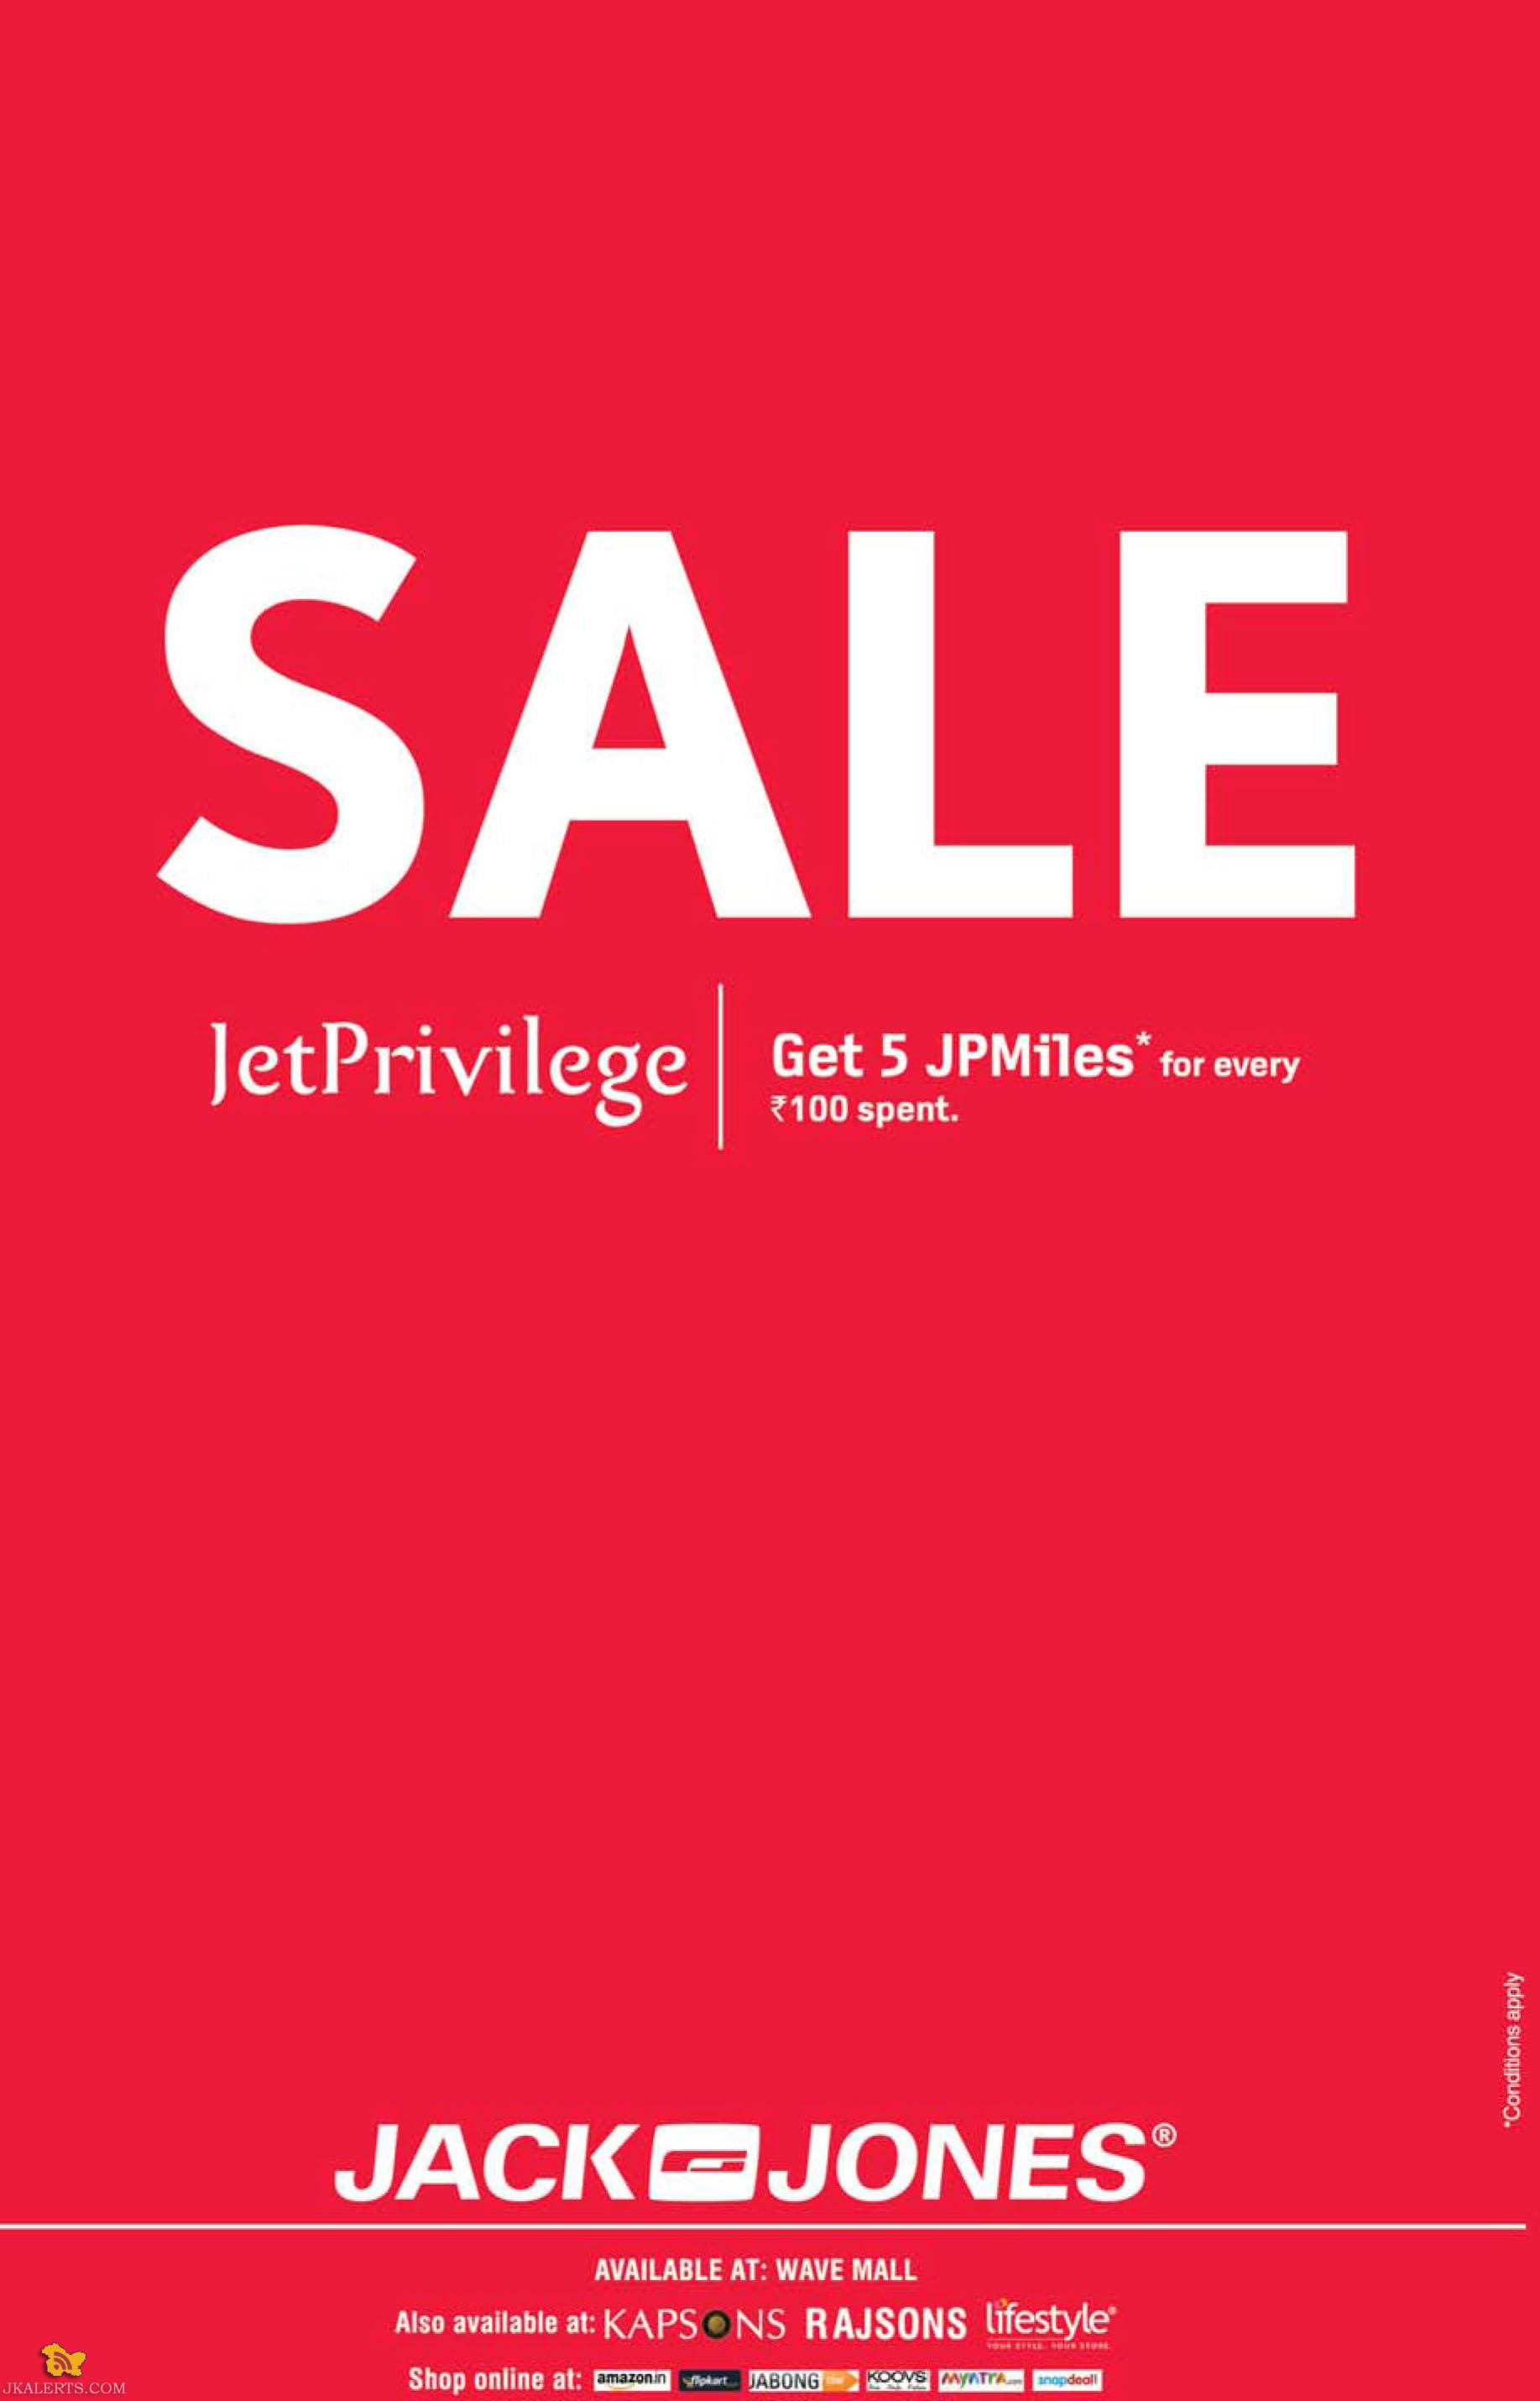 Sale on Jack and Jones